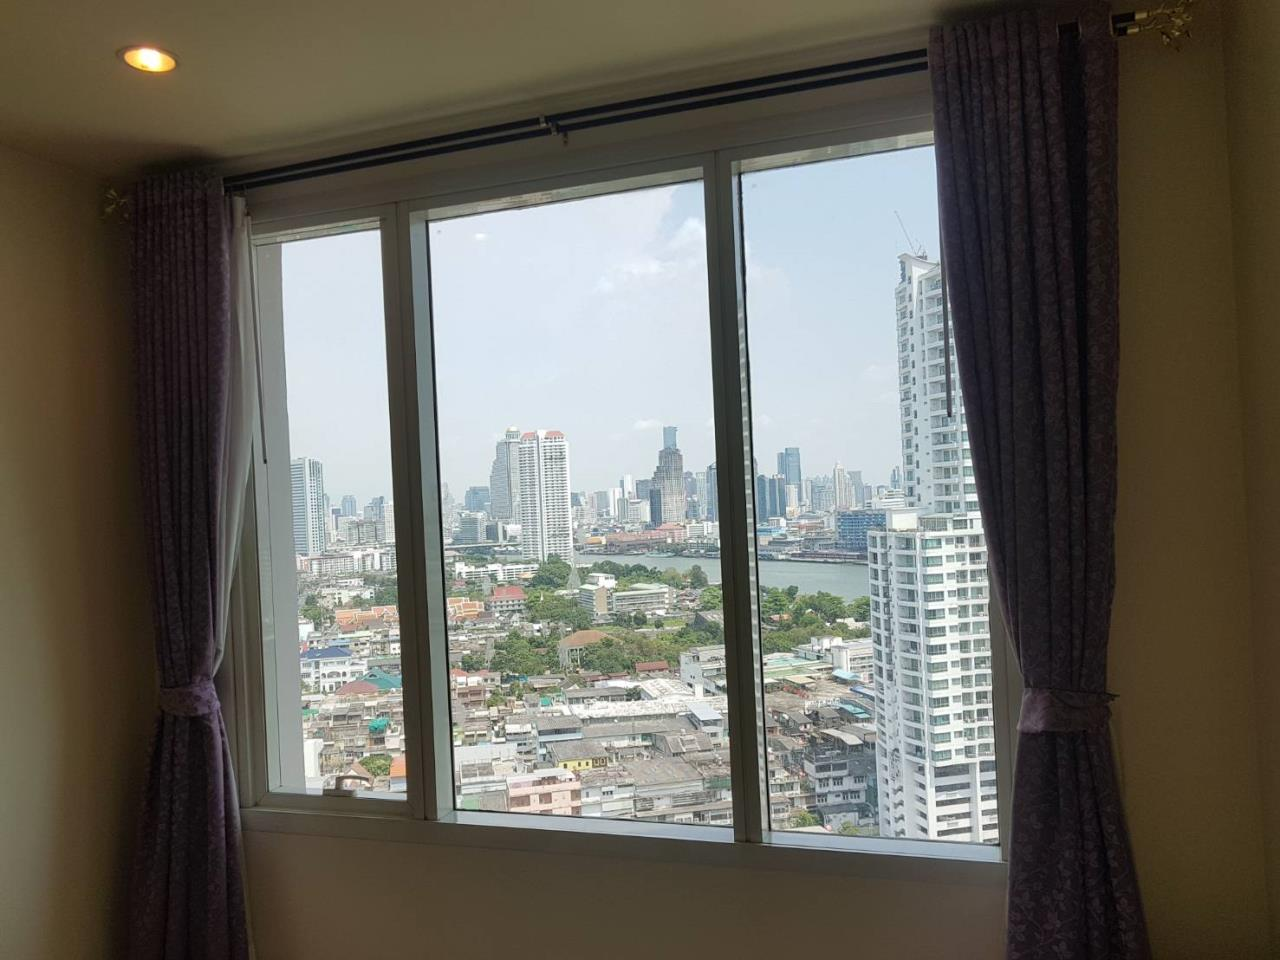 SALA ESTATE Agency's WATERMARK CHAOPHRAYA RIVER – RIVERSIDE-NEAR ICON SIAM,豪华公寓,河景房, 2卧2卫,家具齐全 5